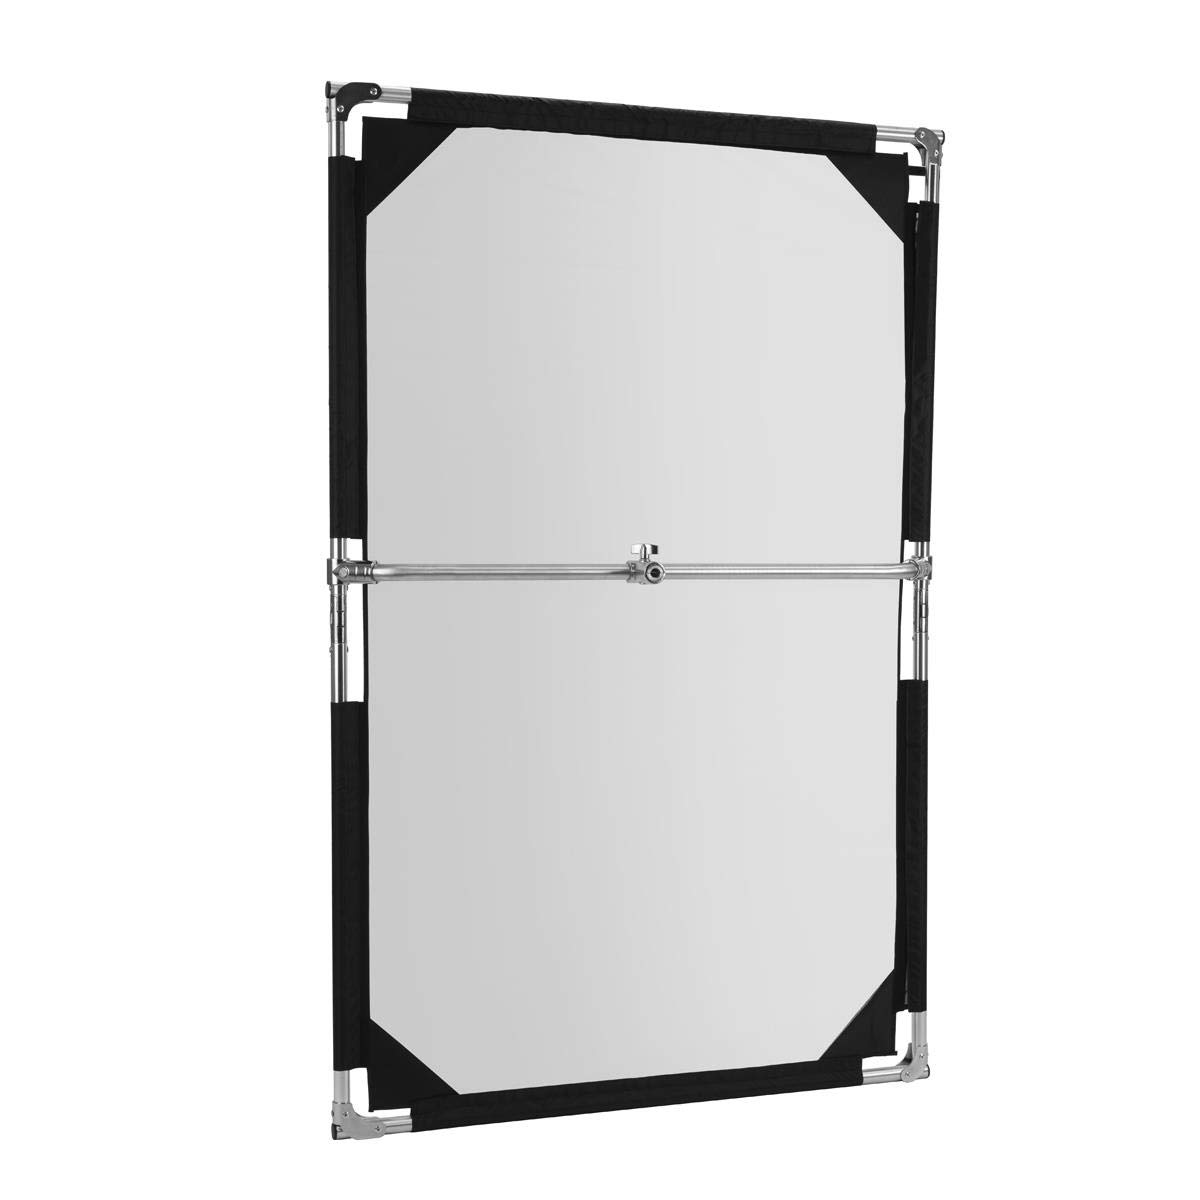 Glow Reflector Panel and Sun Scrim Kit 39'' x 62'' with Handle and Carry Bag (100 x 156cm) by Glow